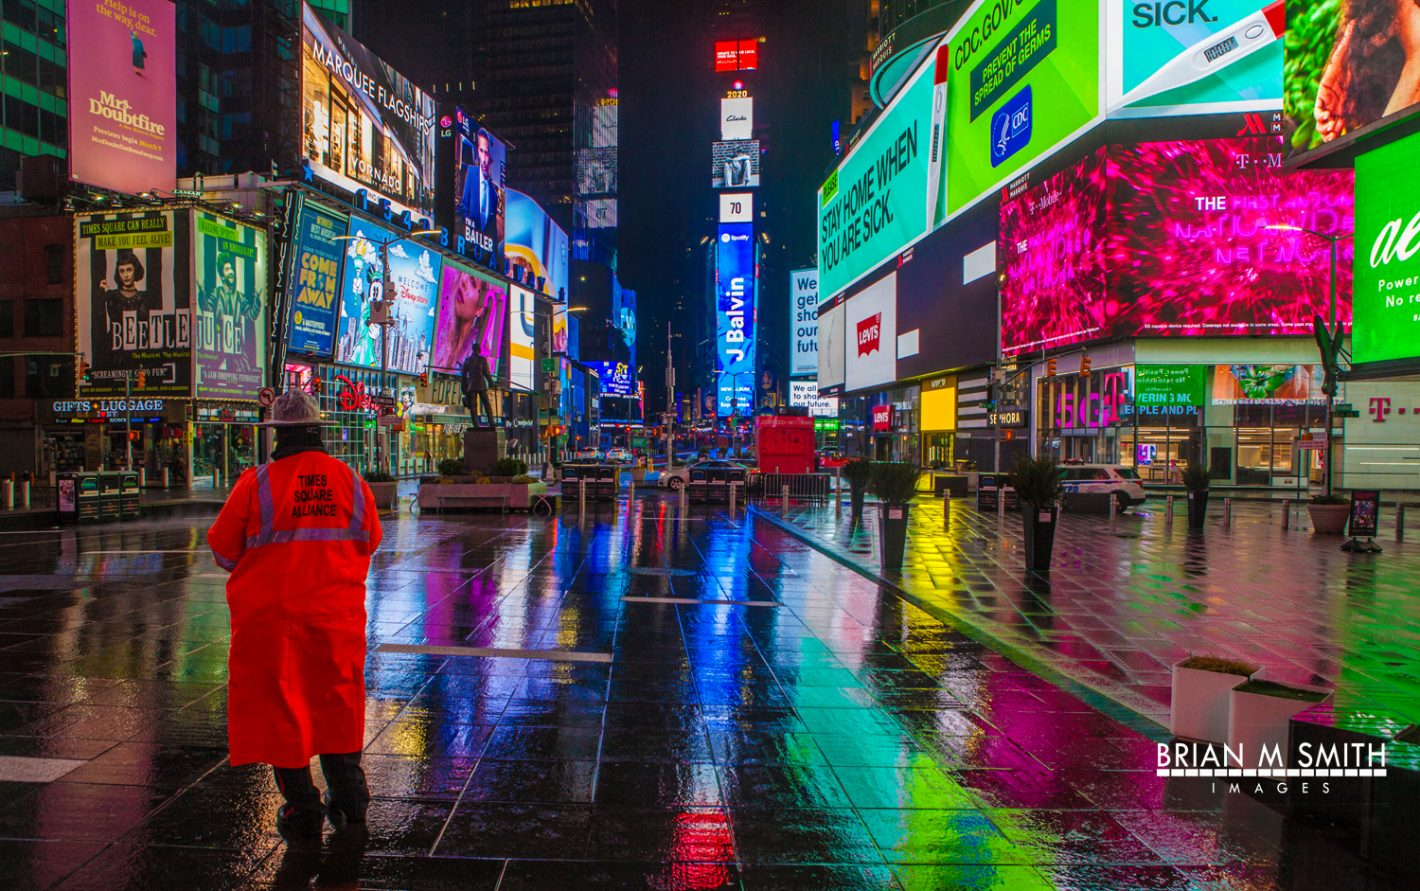 Briam M Smith Images - Times Square Guardian, NY